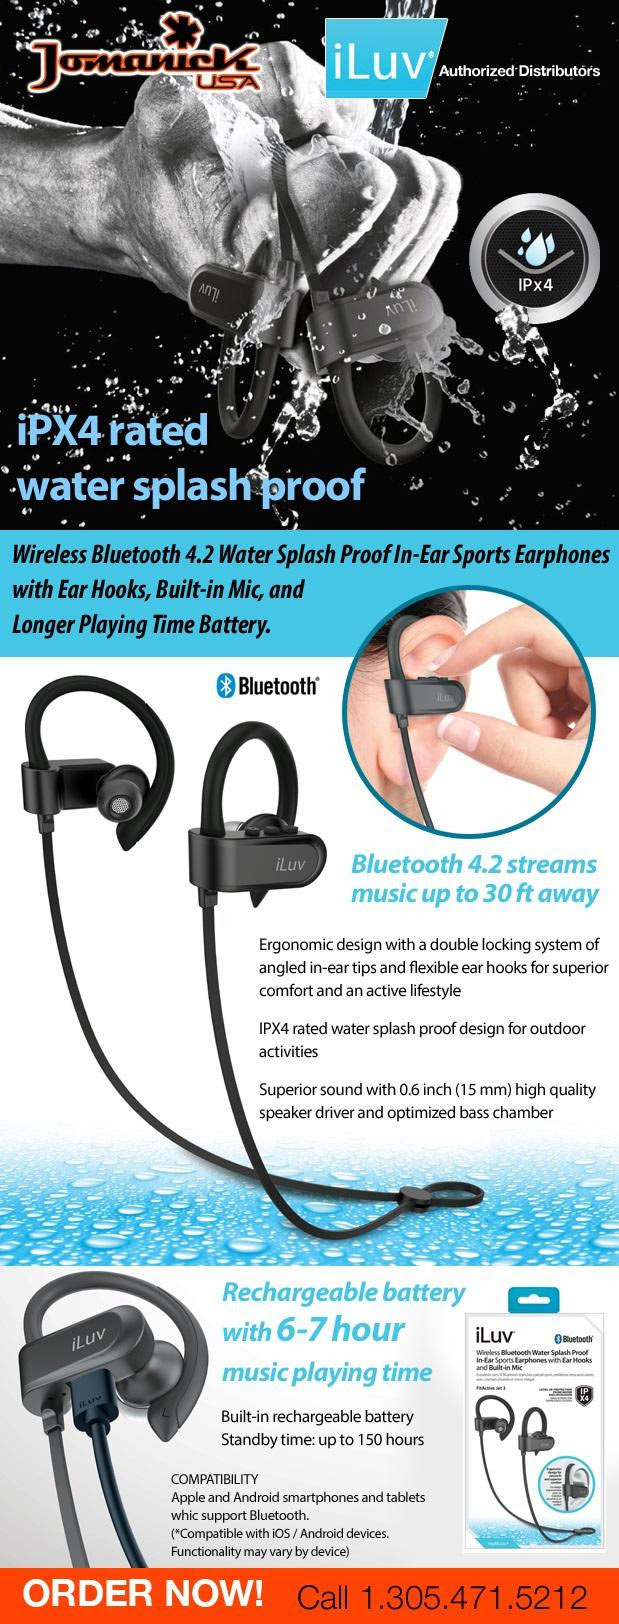 Water Splash Proof - Auriculares